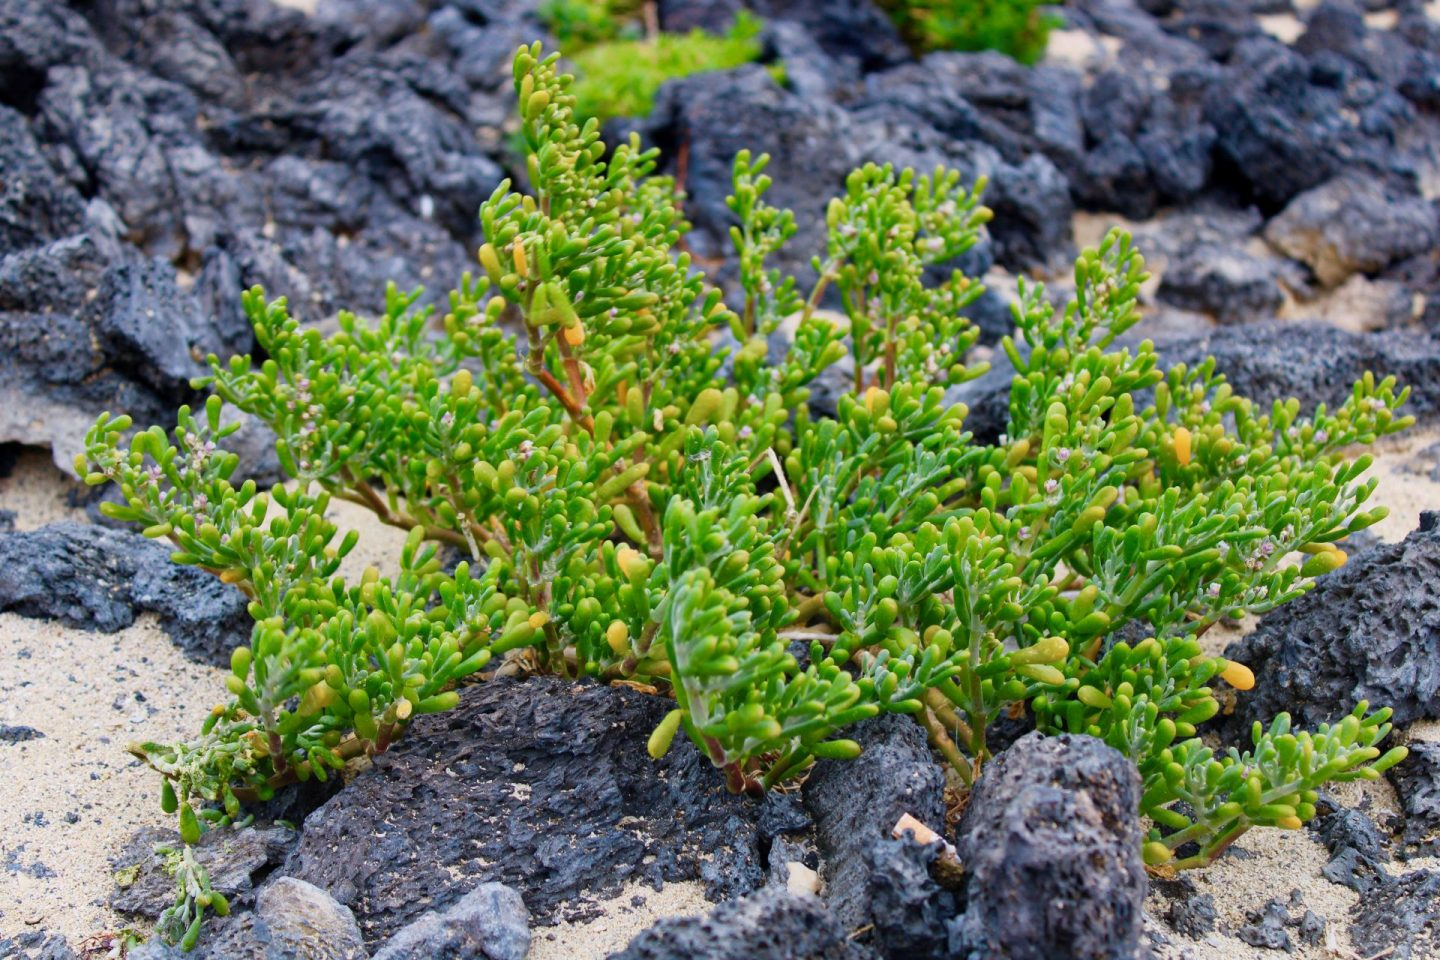 Caleton Blanco in Lanzarote, showing a close of up a bright green plant growing out of black volcanic rock, with white sand surrounding it.